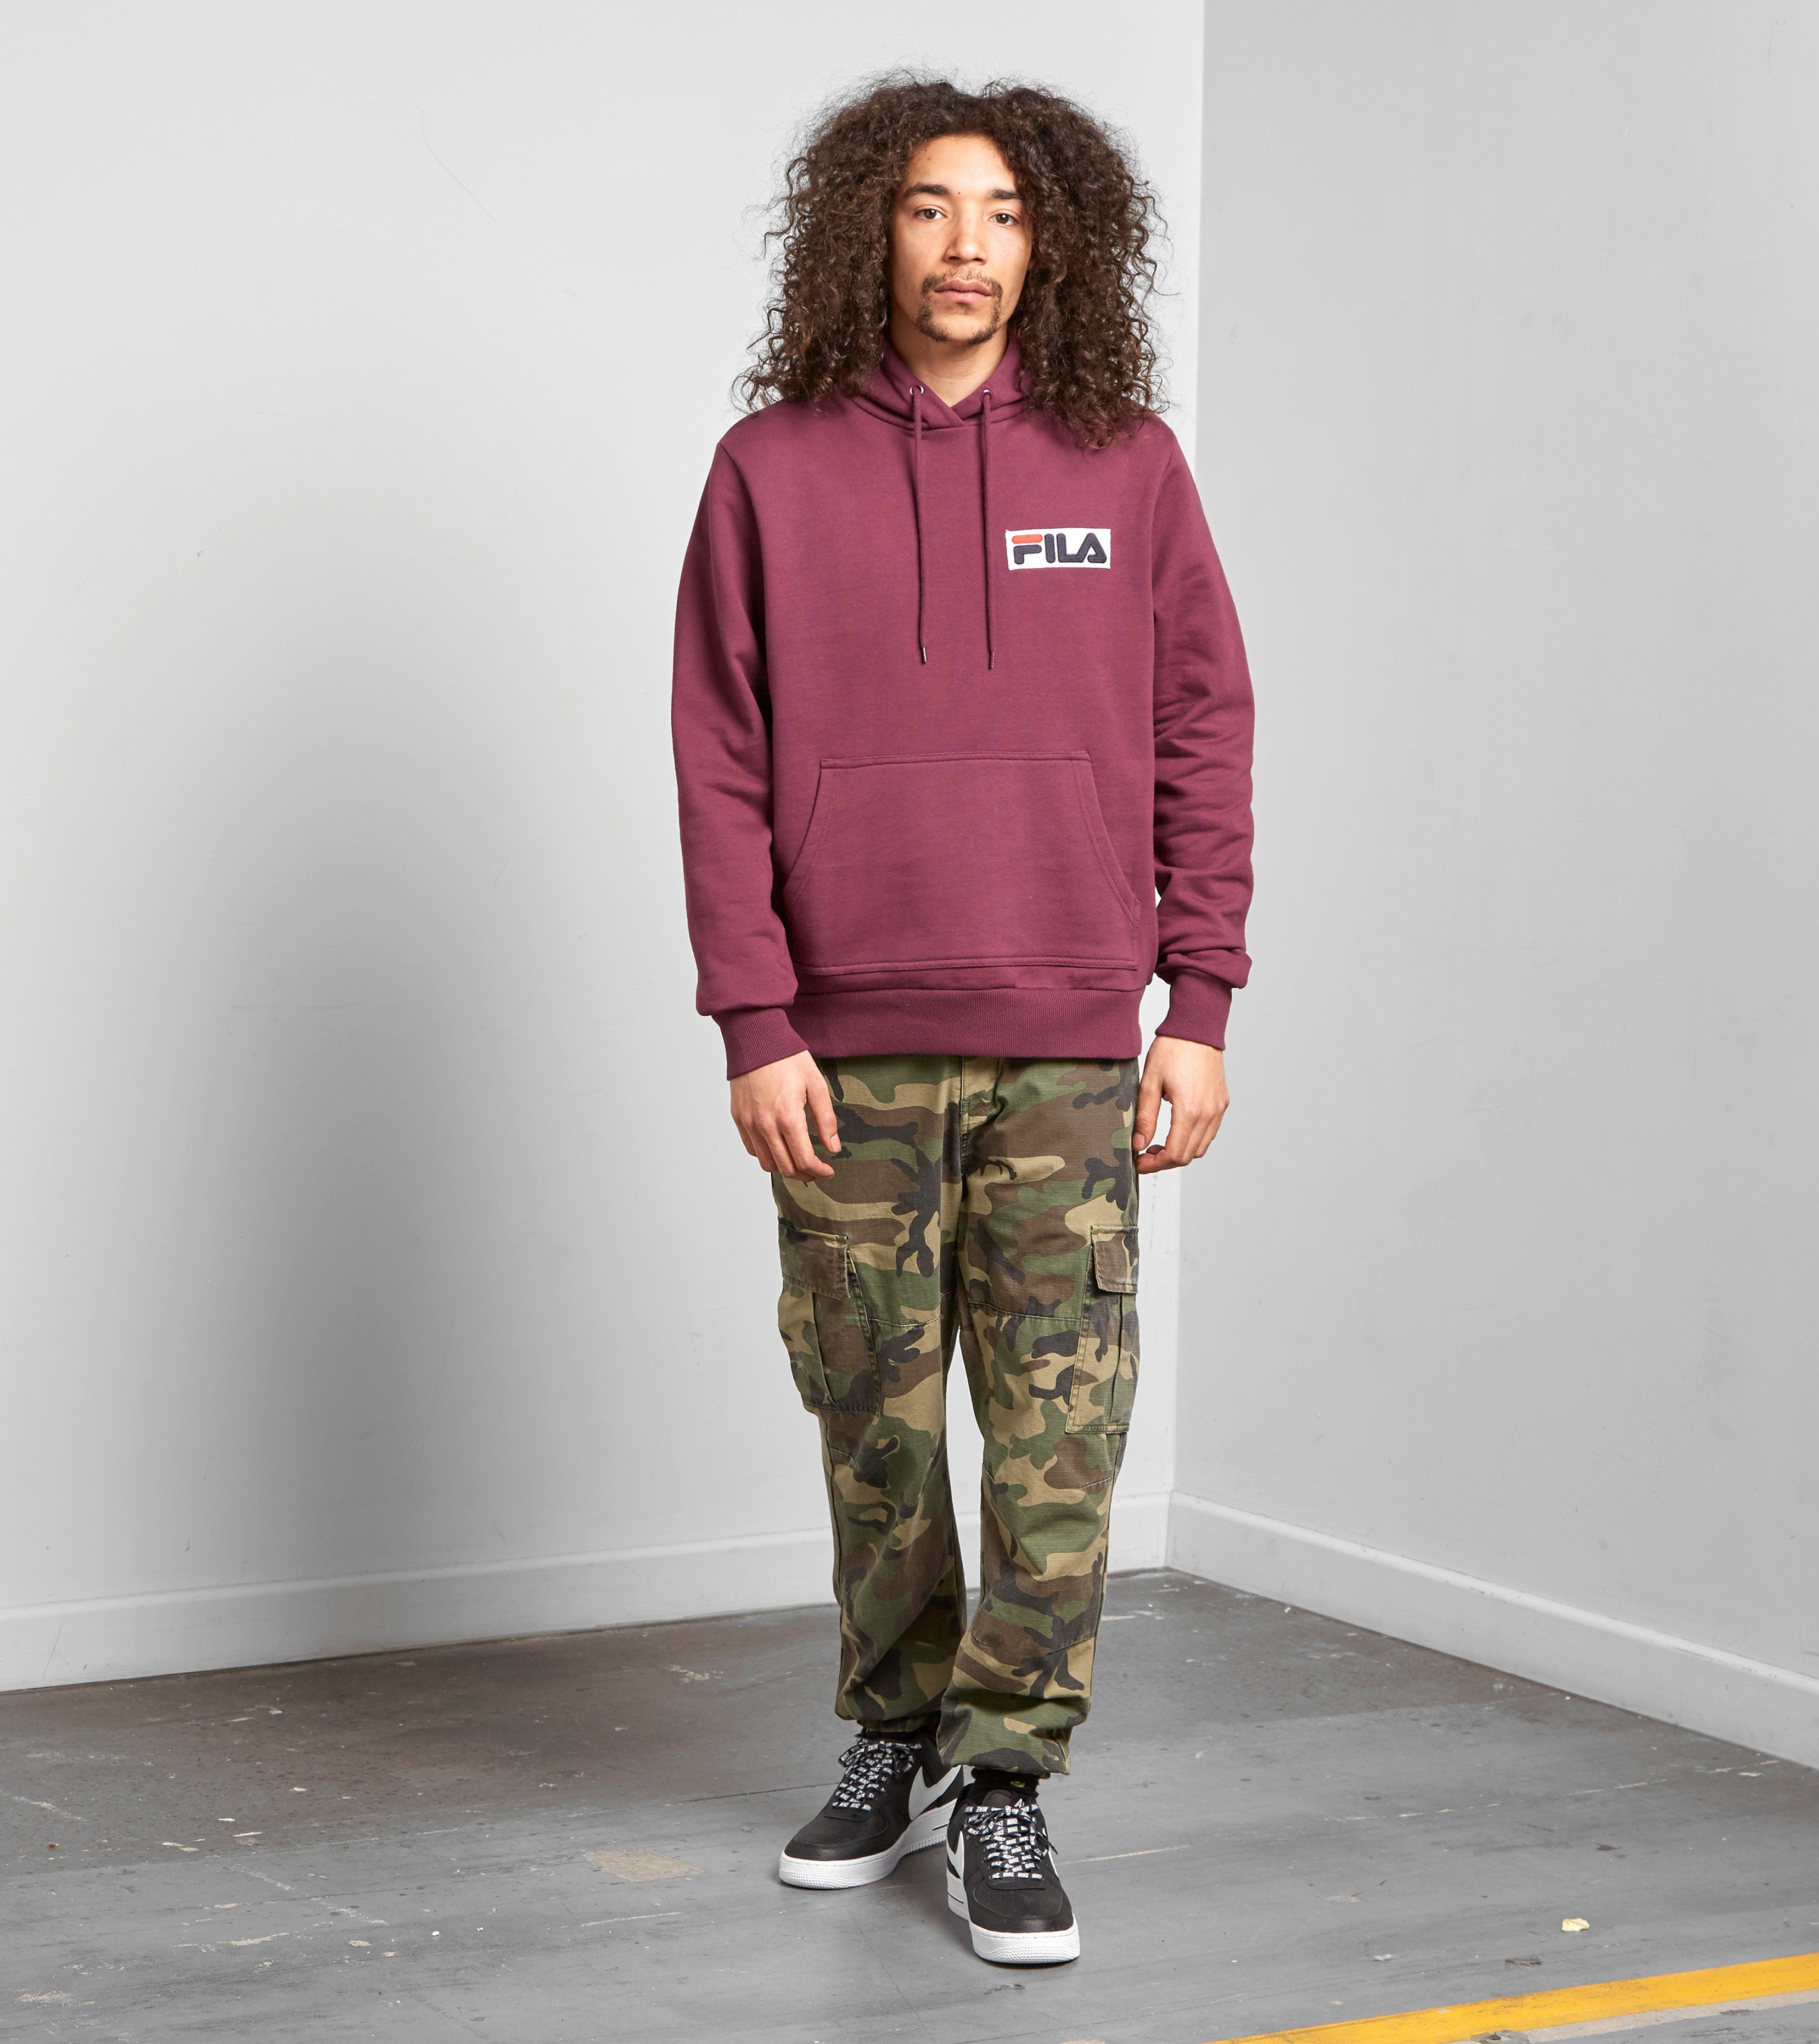 Fila Rupe Hoody - size? Exclusive